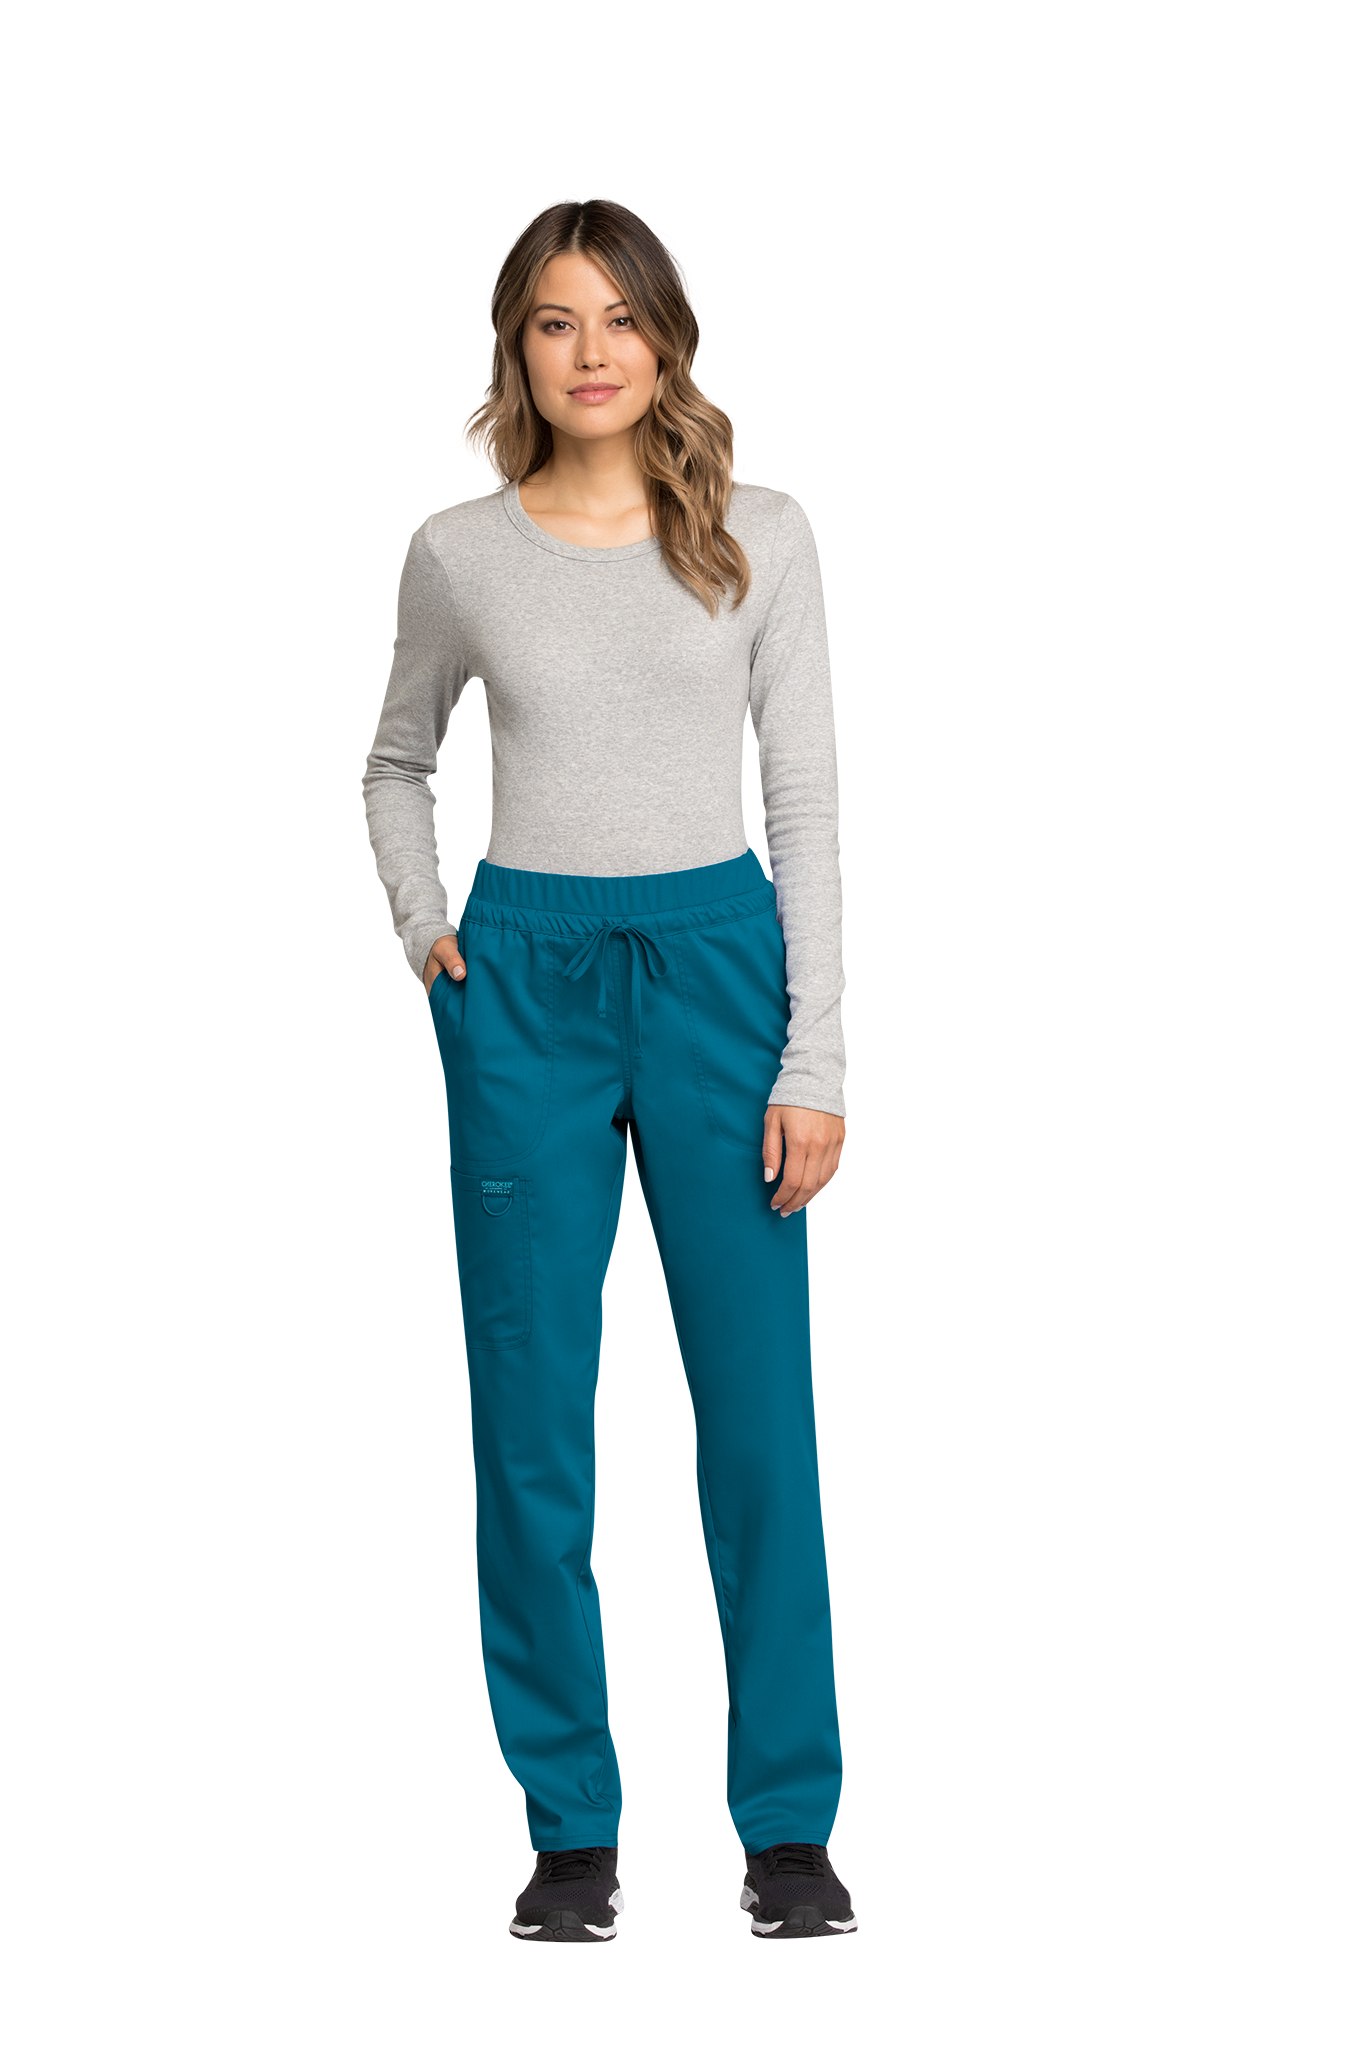 Cherokee Revolution WW105 Tall Mid Rise Tapered Leg Drawstring Pant